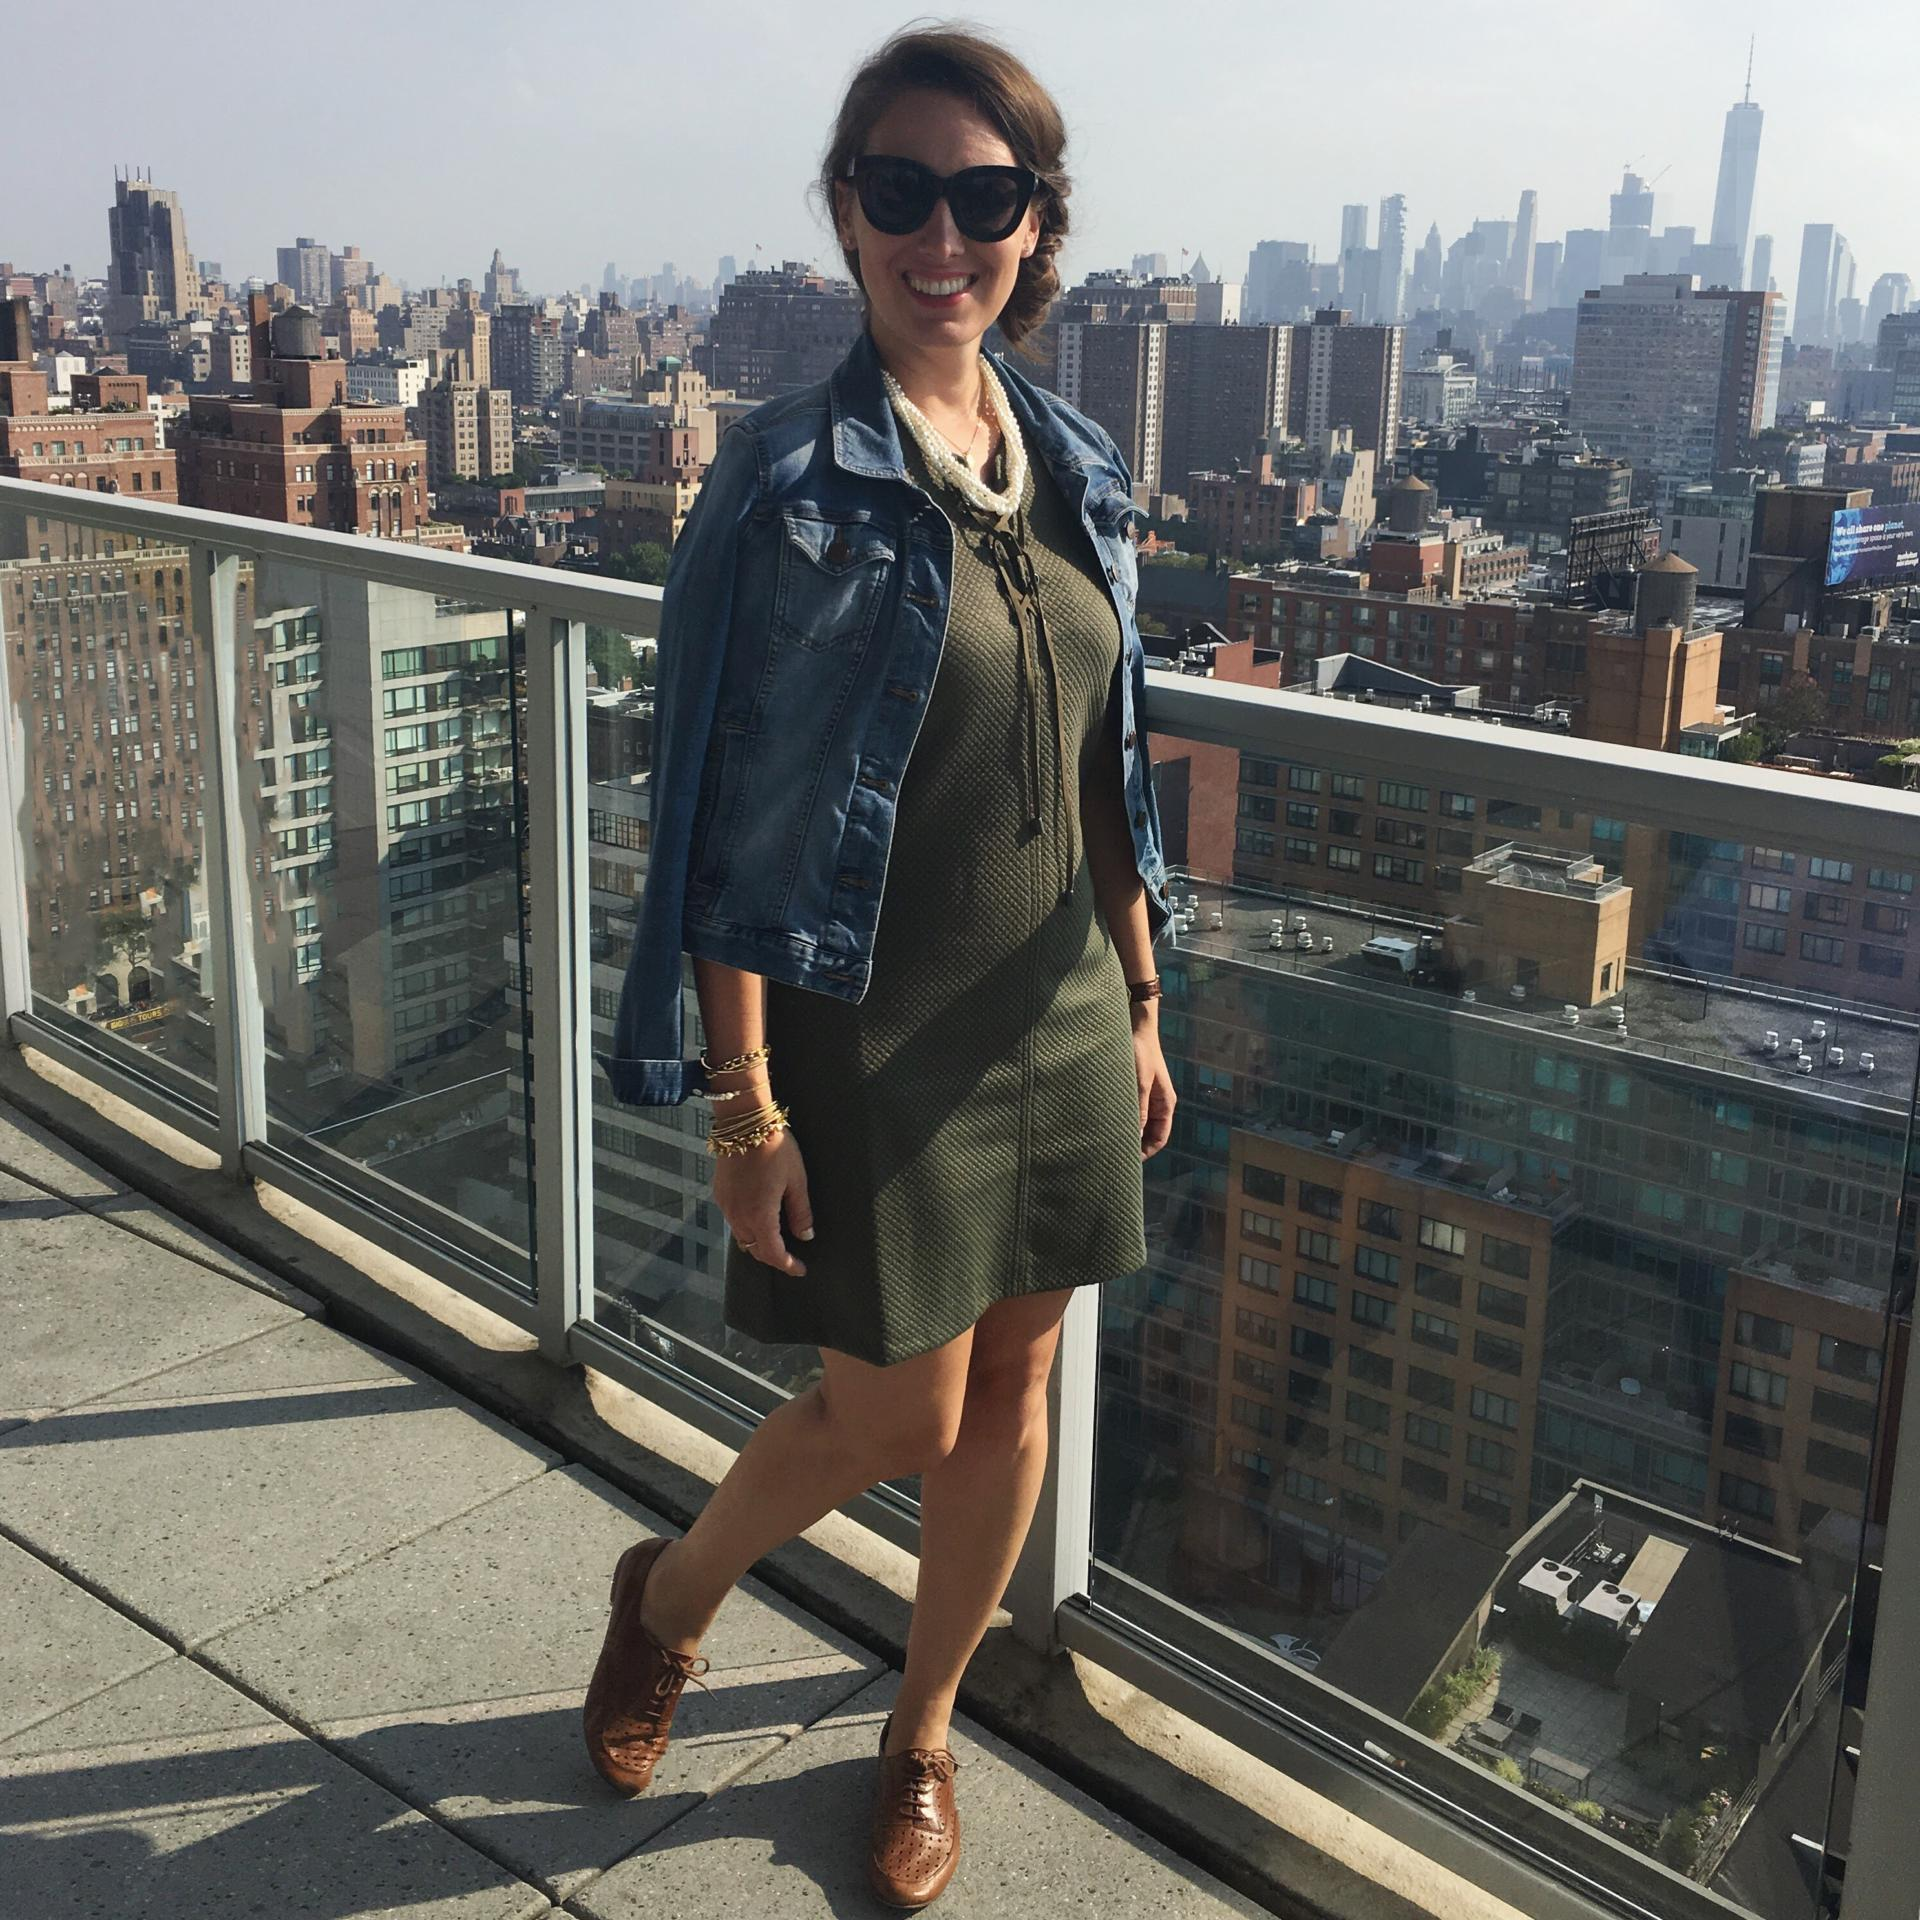 STYLE: New York Fashion Week, Part II